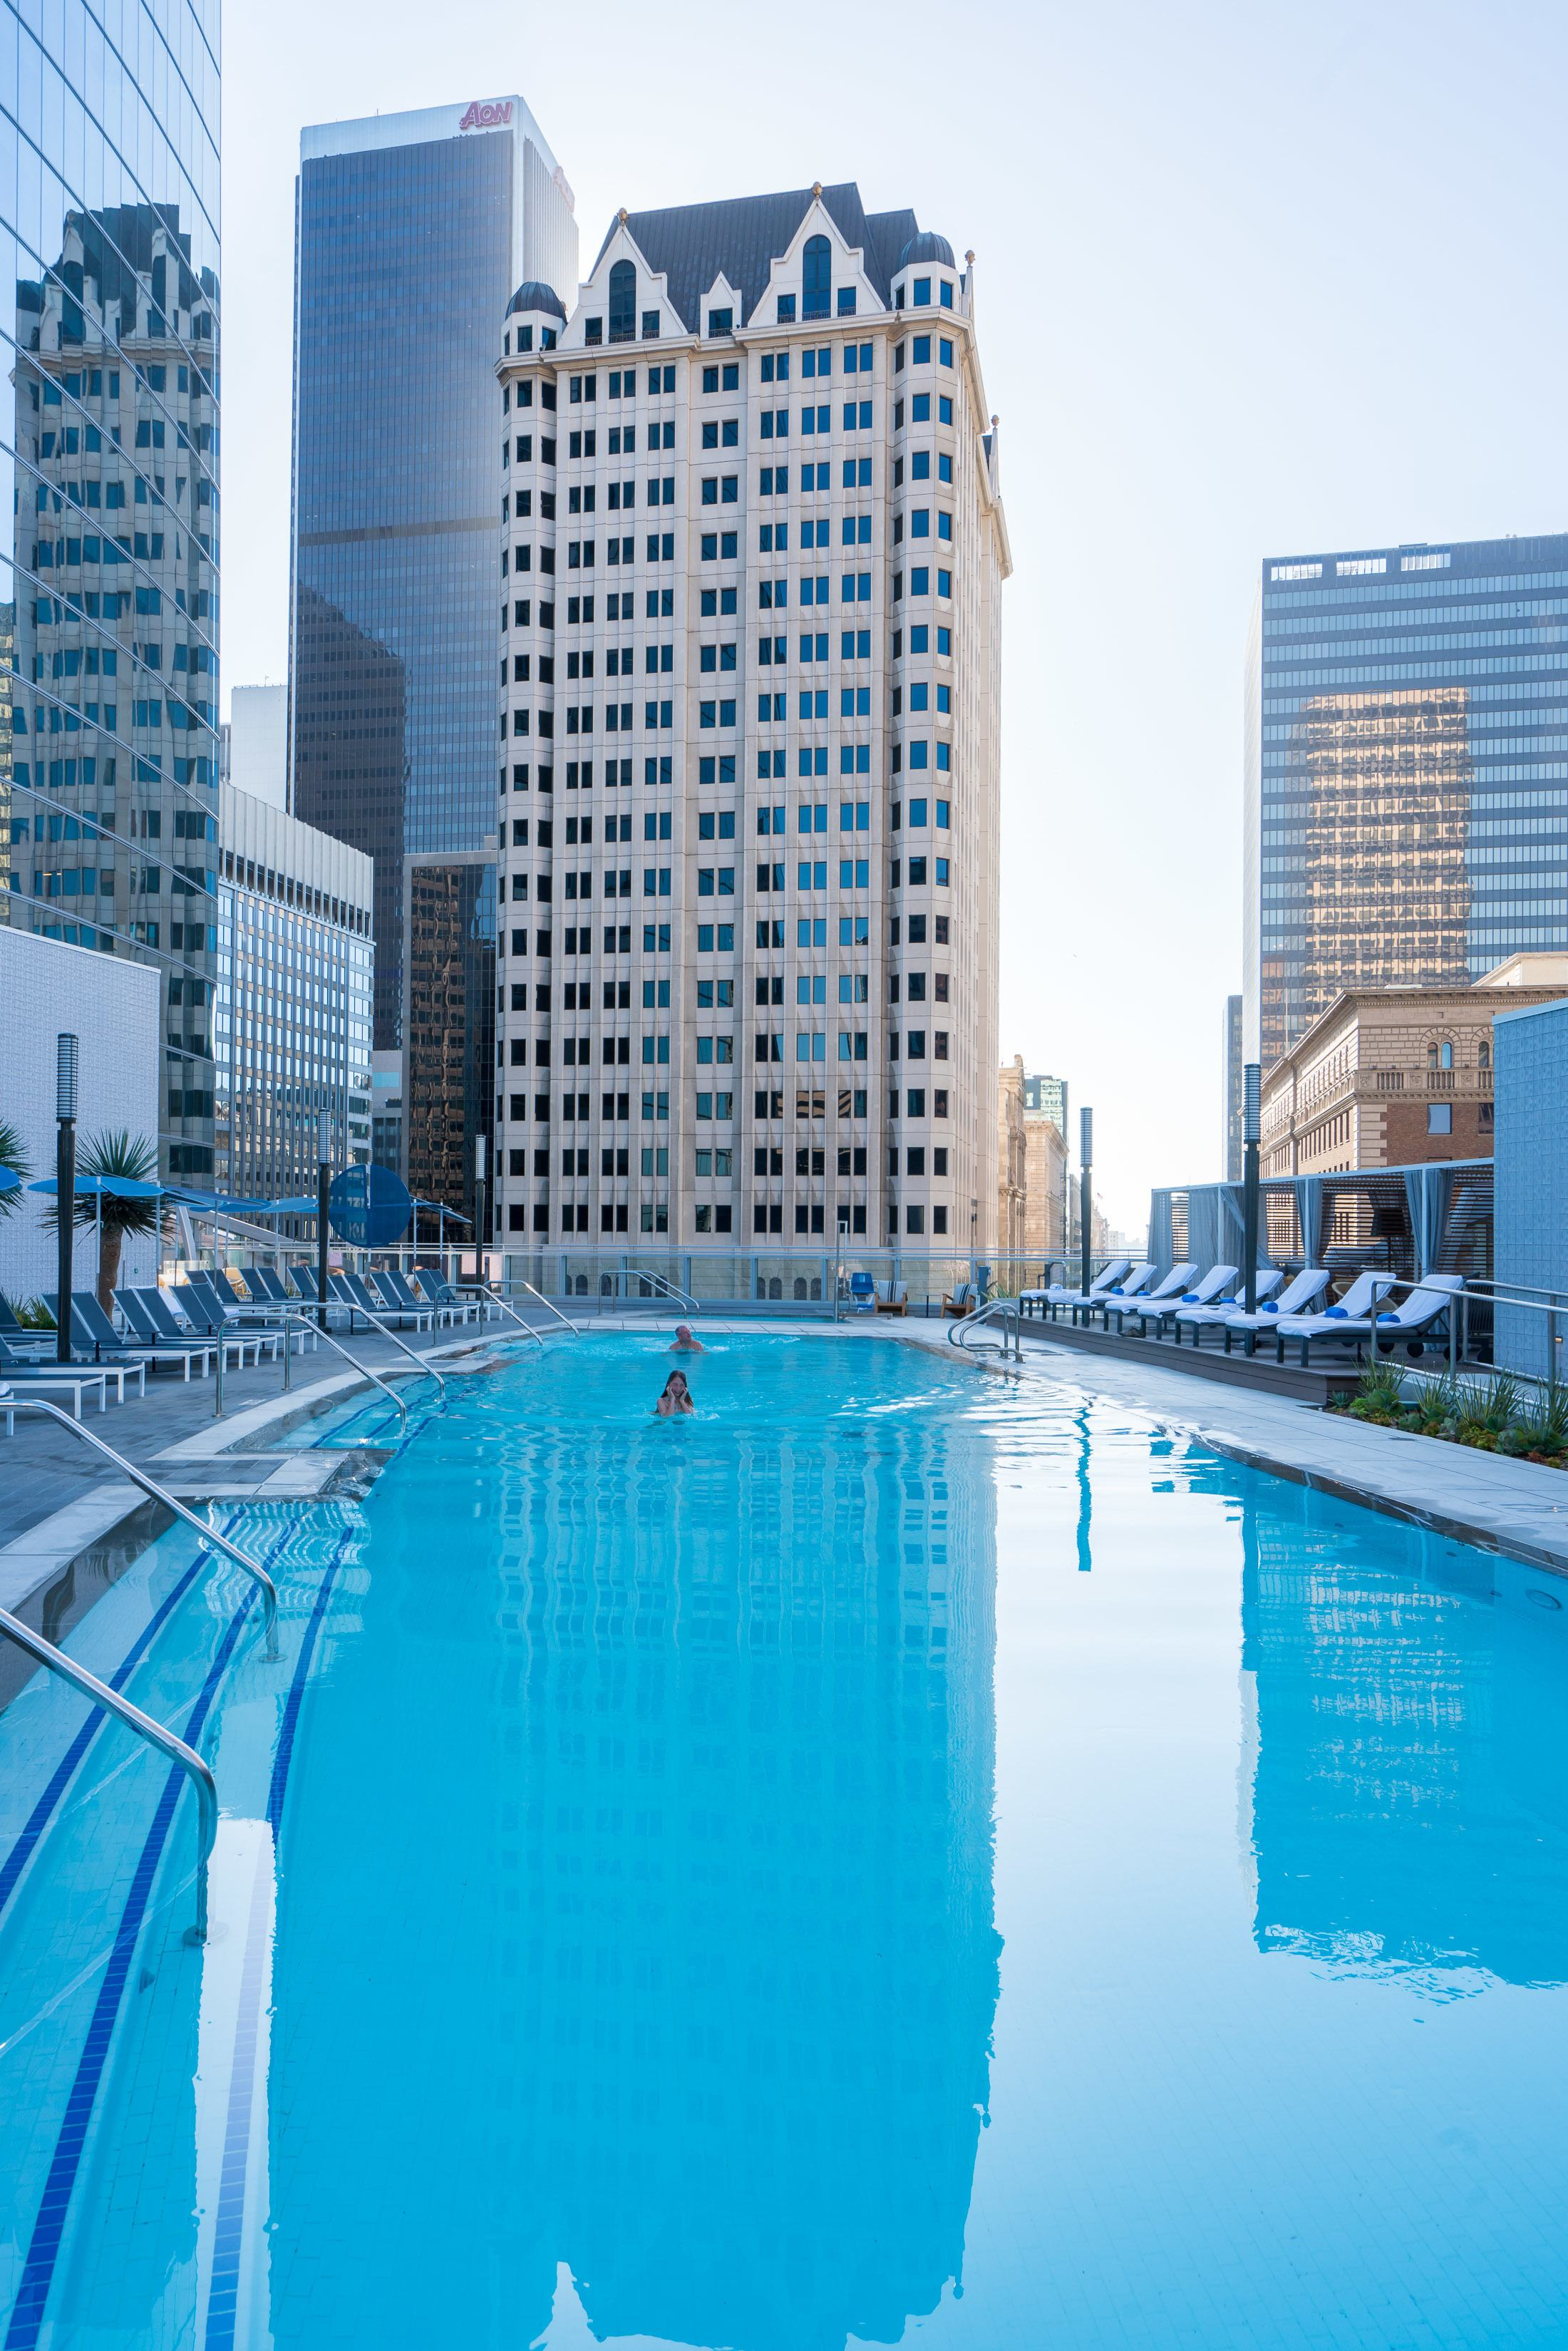 The pool at InterContinental Los Angeles Downtown.